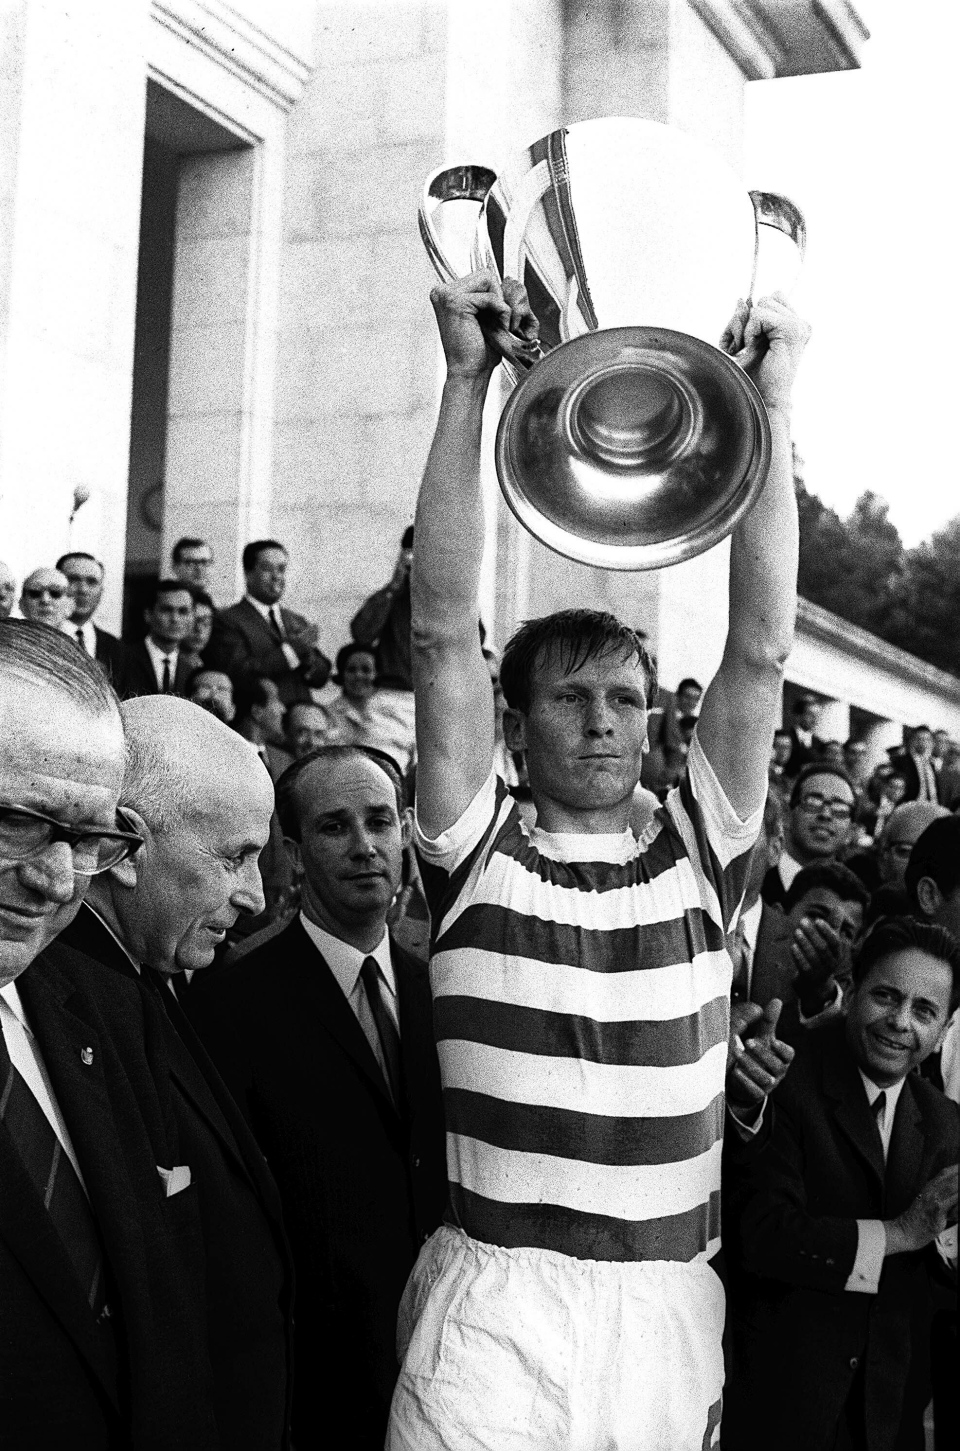 In this May 25, 1967 file photo Celtic soccer team captain Billy McNeill holds aloft the European Cup after it was presented by Portugal's President Americo Tomaz, left, in Lisbon, Portugal. Celtic defeated Inter-Milan 2-1 in the European Cup final.  (AP Photo, File)